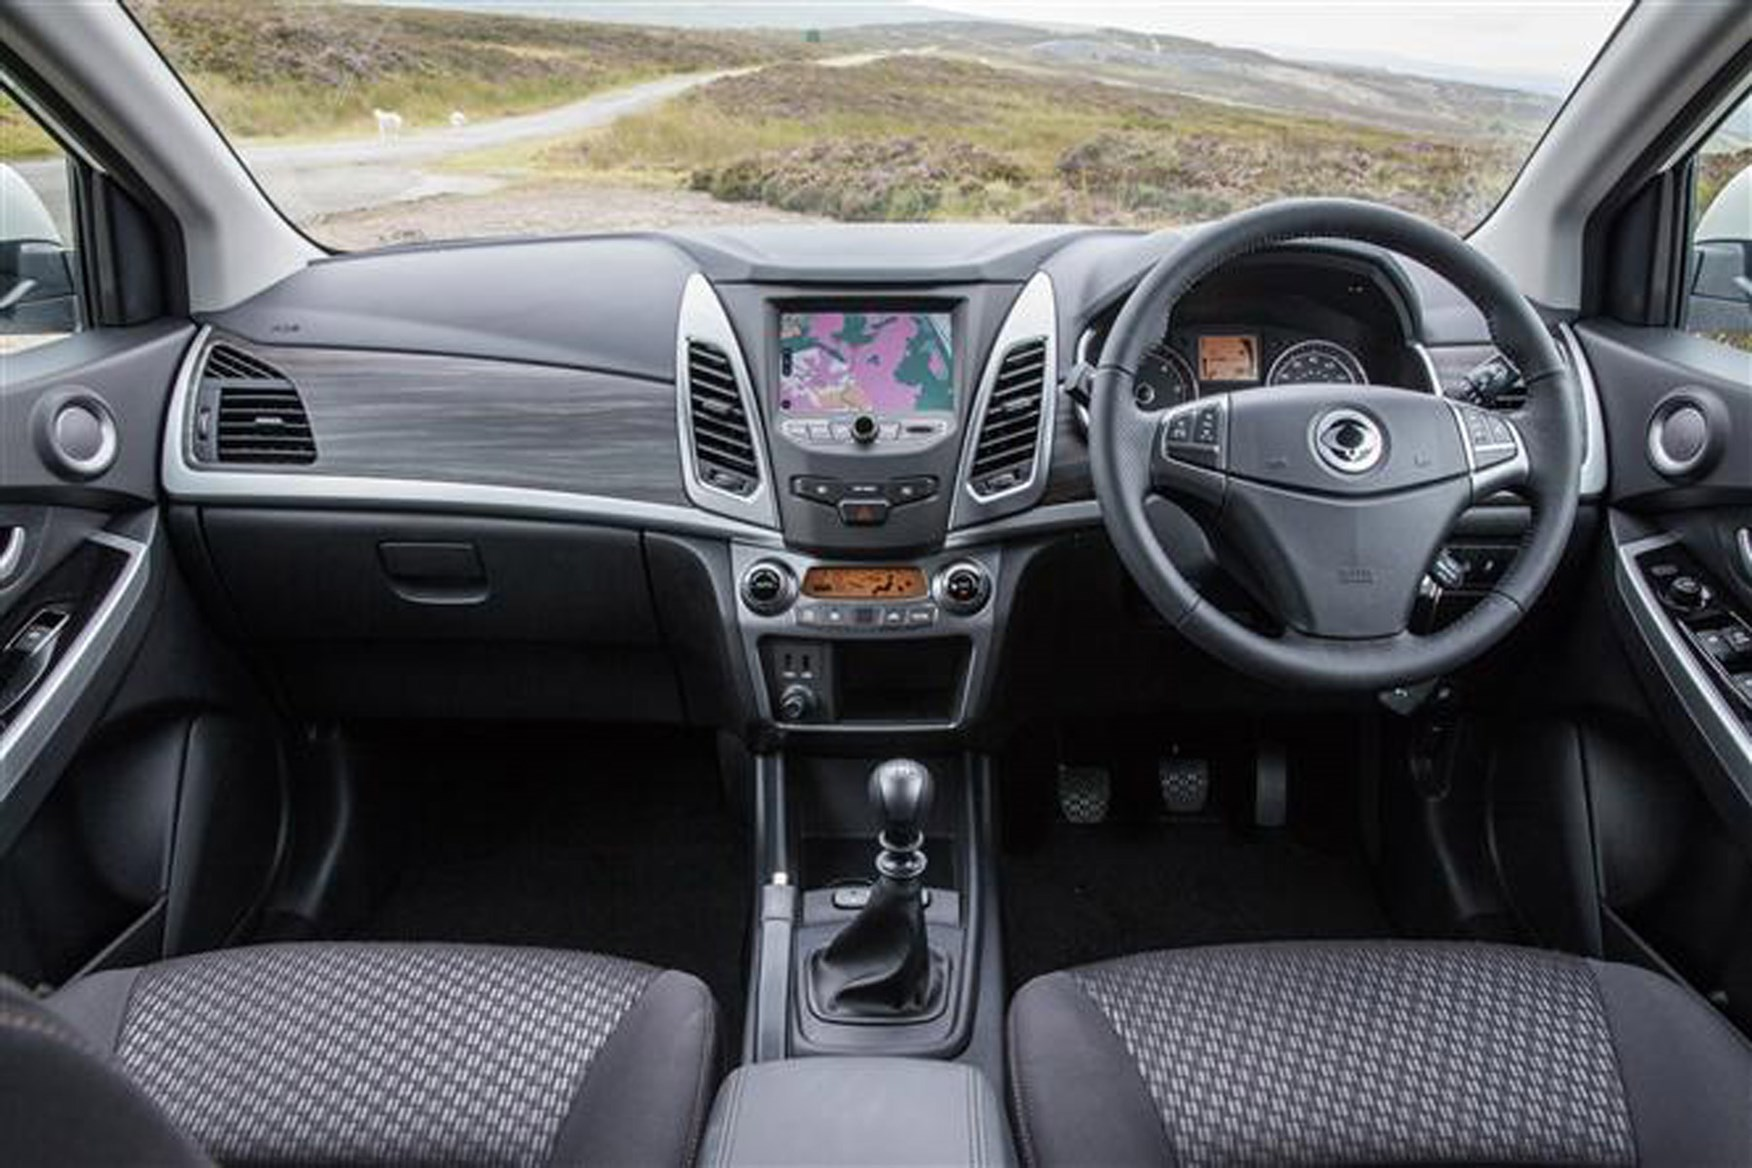 Ssangyong Korando review on Parkers Vans - interior